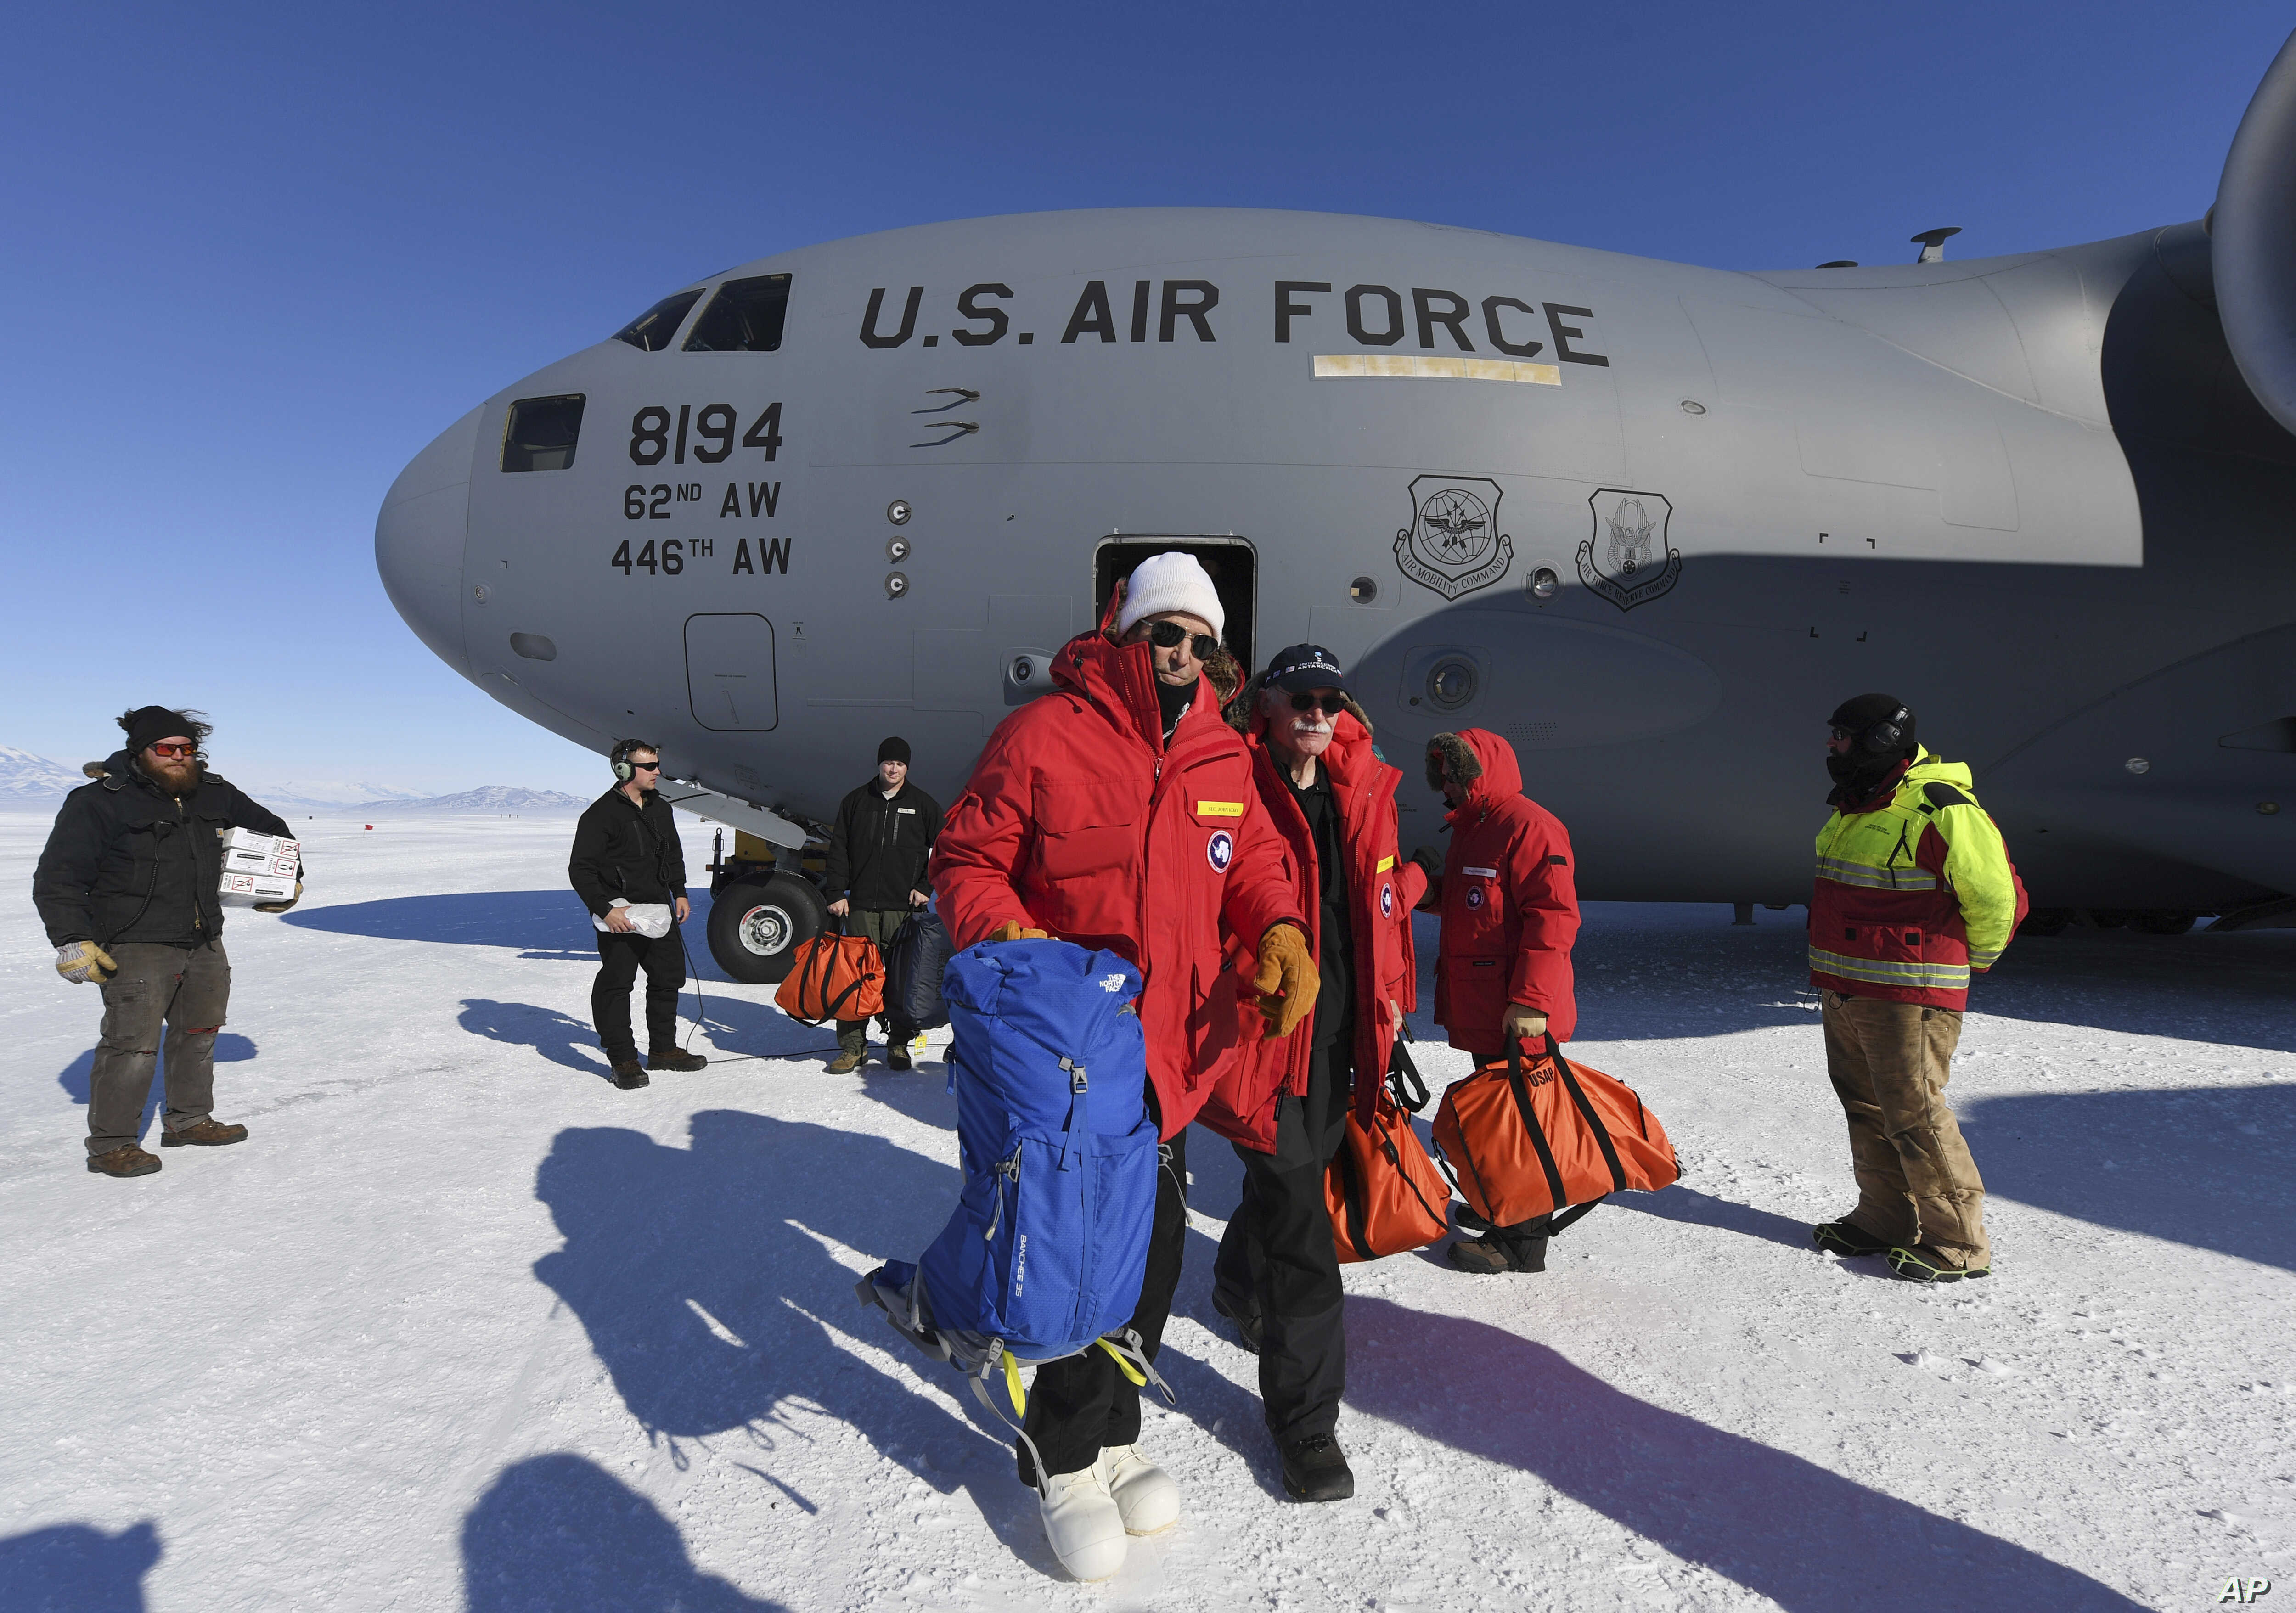 Secretary of State John Kerry, center, disembarks from a U.S. Air Force C17 Globemaster  in Antarctica on Friday, Nov. 11, 2016. Kerry holds the record for the most countries visited while secretary of state.